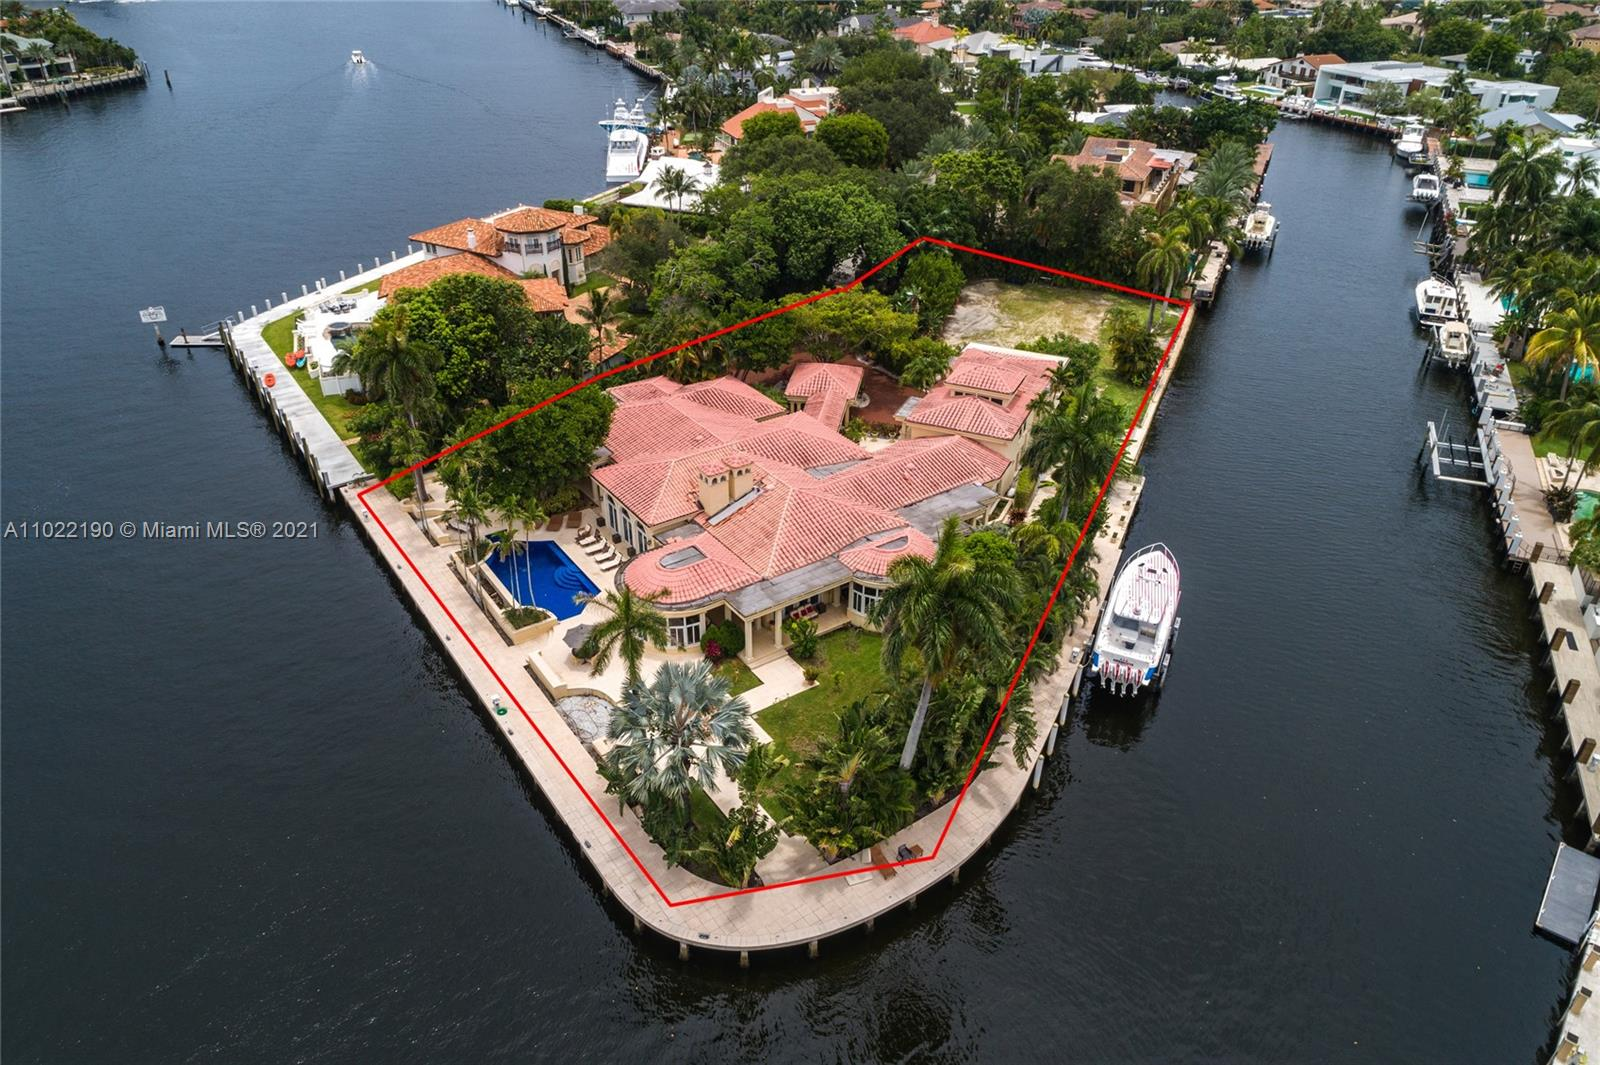 Luxurious Estate in Las Olas! Idyllically located on a private 1.14-acre point lot on the Rio Grande Canal, this 7BR/7.5BA, 8,132sqft abode impresses with jaw-dropping Mediterranean architectures and 550' of protected waterfront for mega-yachts. The impeccable interior features towering ceilings, exotic marble floors and a gourmet kitchen with premium stainless appliances. Entertainment-ready, the home boasts a billiard room, bar, lounge, sparkling pool, and intoxicating water views. The first-floor master bedroom pampers with coffered ceilings, a walk-in closet, hardwood floors, pool access, and a European spa-inspired en suite with a Romanesque shower and a deep soaking tub. Other features: 3-car garage, laundry area, guest home and quick access to ocean! Call now for an exclusive tour!